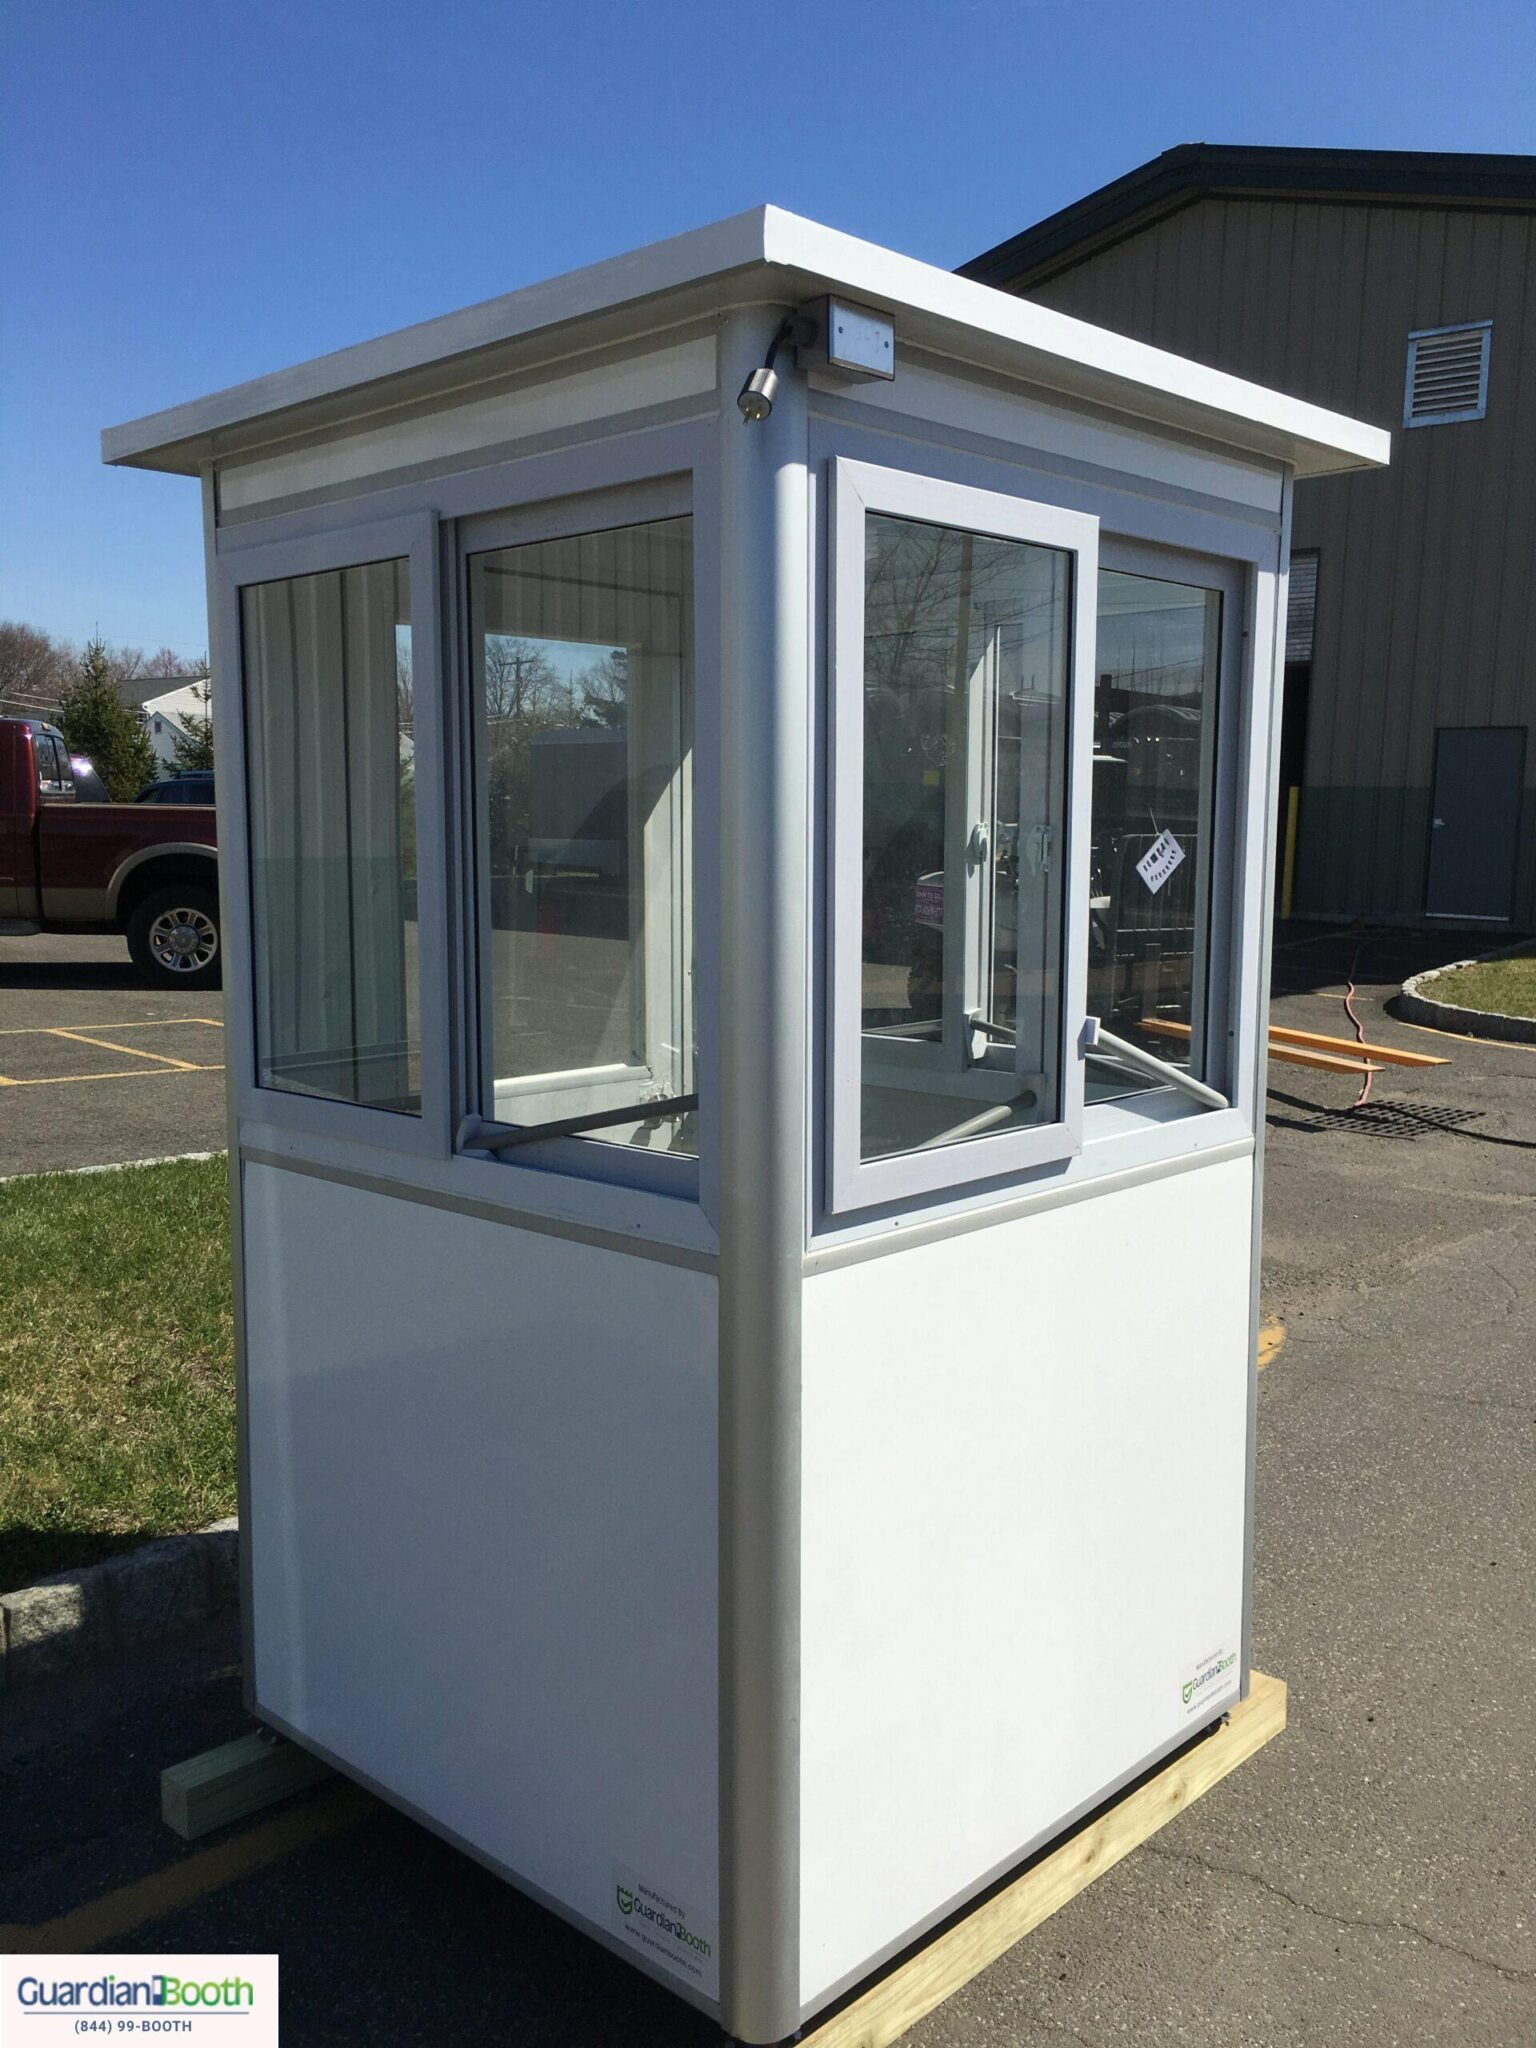 4x4 in Airport Security Booths in Cook County, Illinois with Sliding Windows, External Junction Box, and Exterior Custom Vinyl